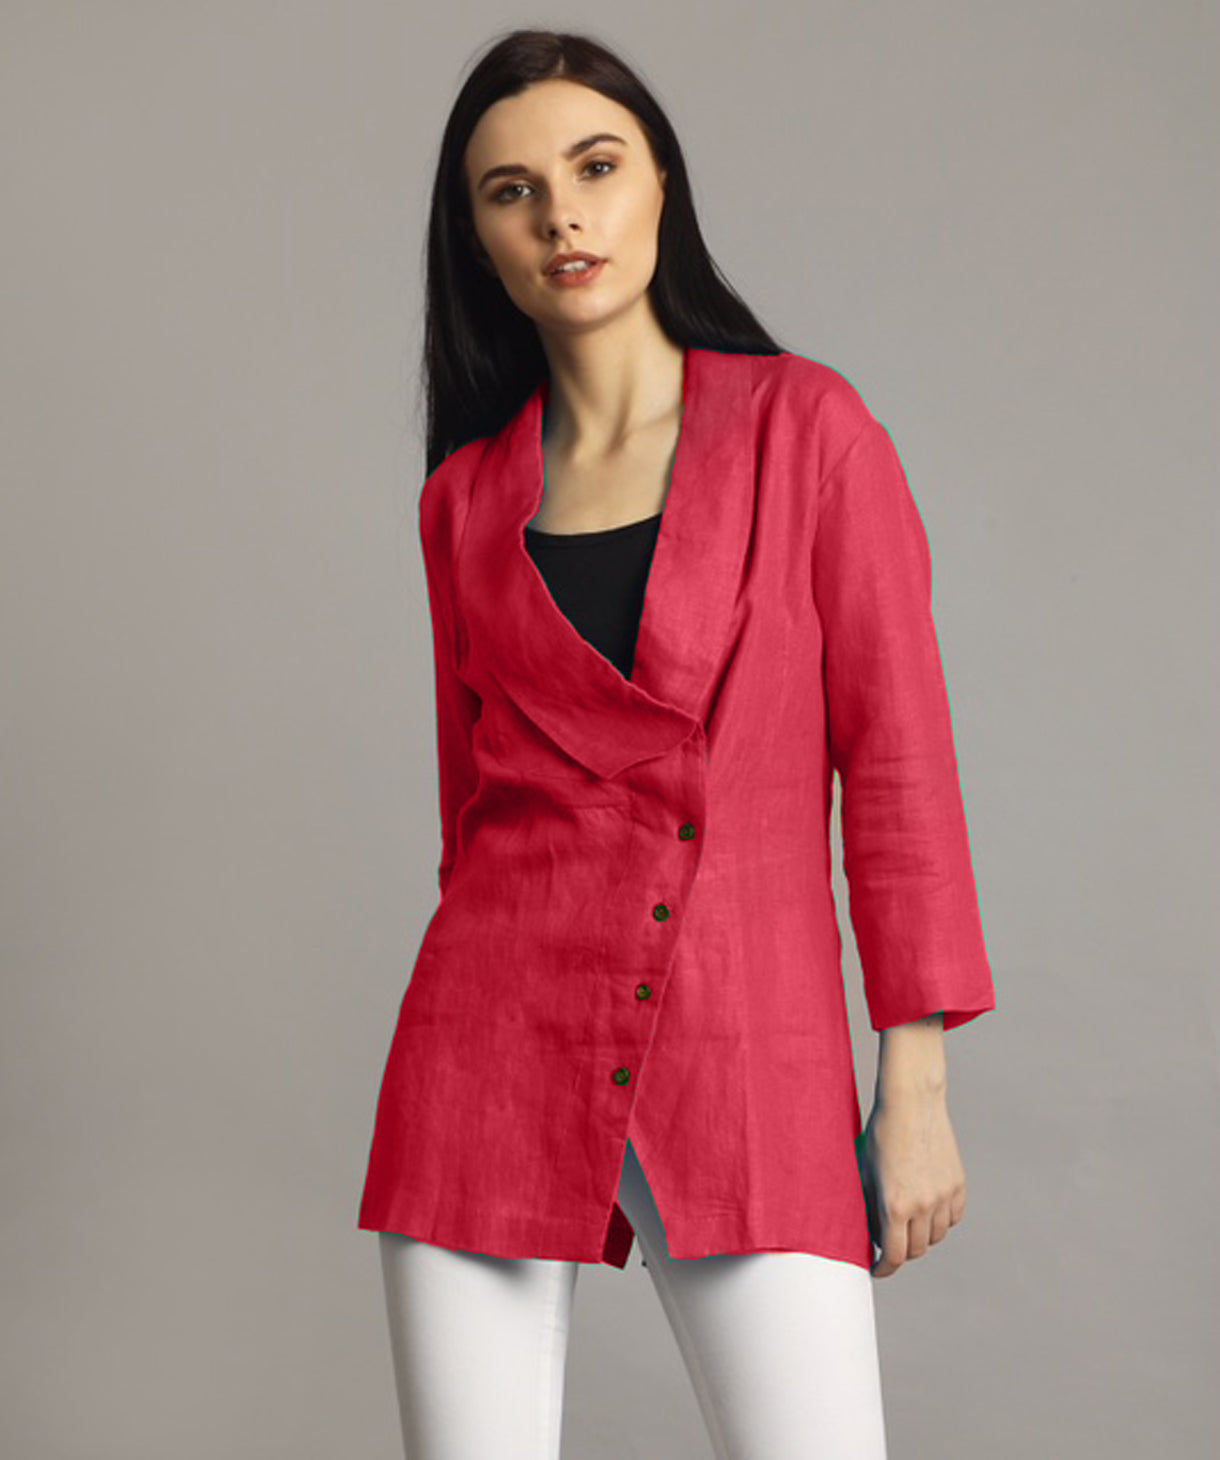 Uptownie Plus Pink Linen Jacket Style Tunic 1 clearance sale